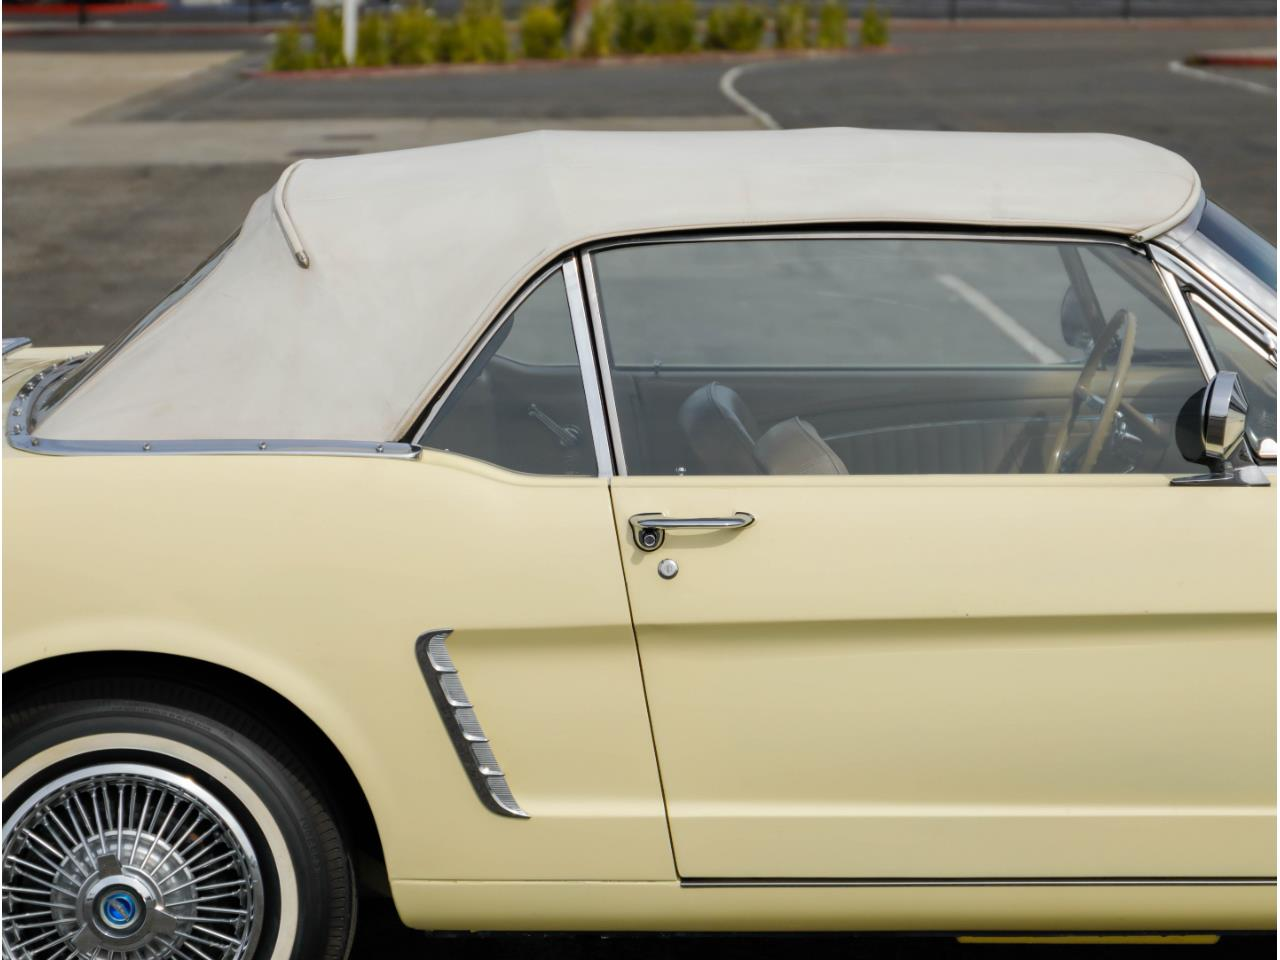 Large Picture of Classic '65 Mustang located in California Offered by Chequered Flag International - PR18